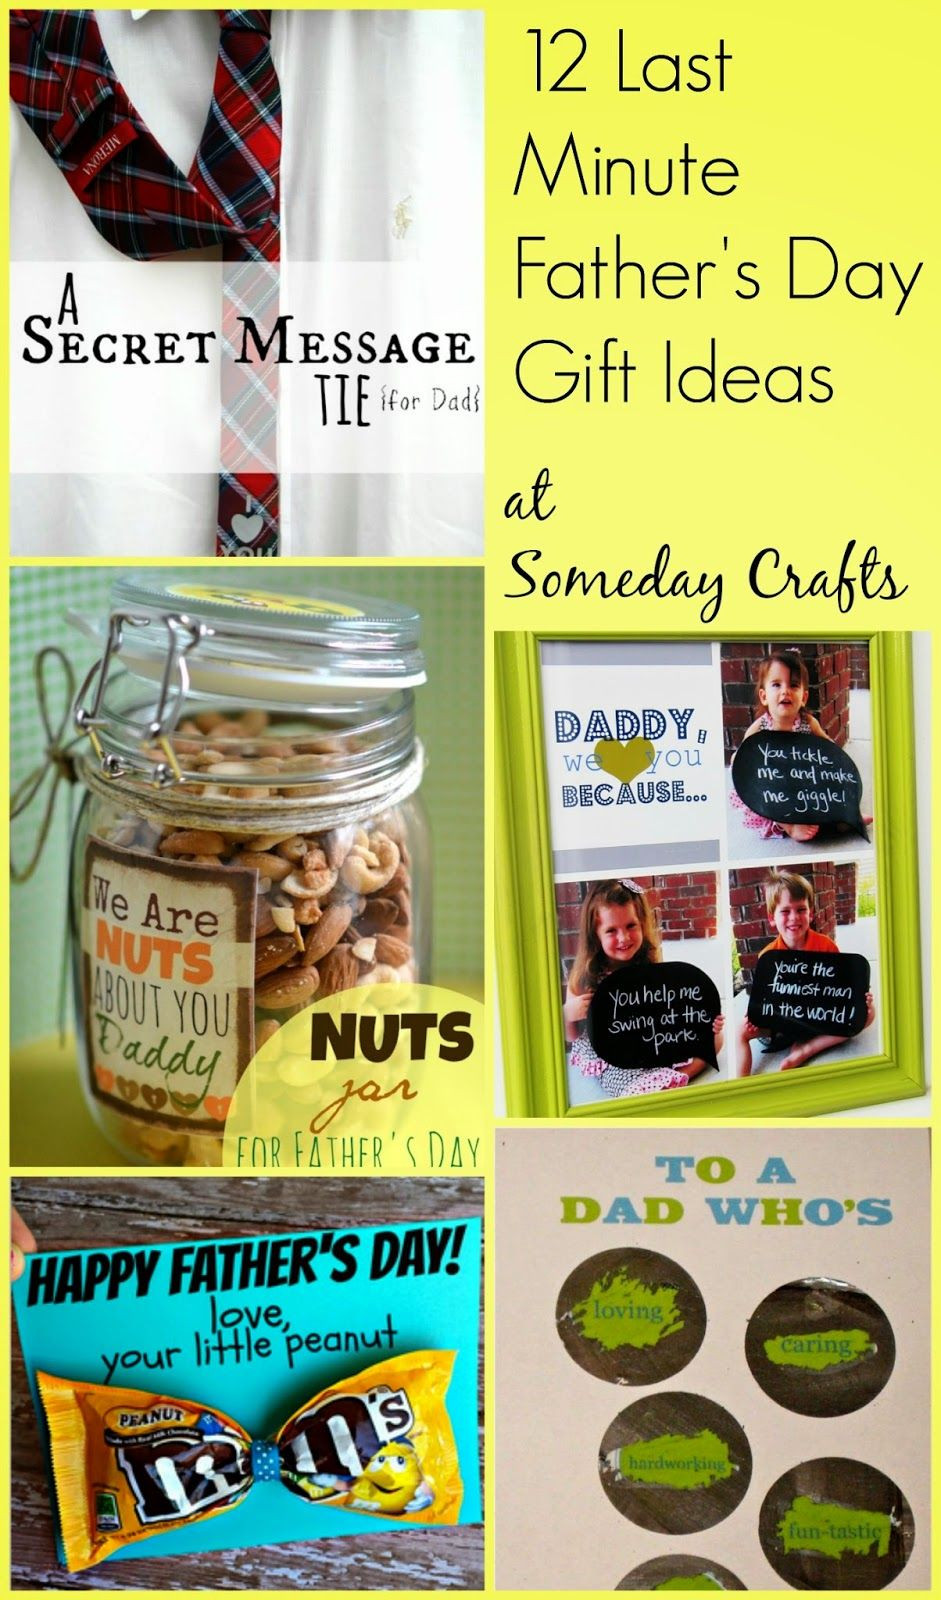 Best ideas about Last Minute Gift Ideas For Dad . Save or Pin Someday Crafts 12 Last Minute Father s Day Gifts Now.